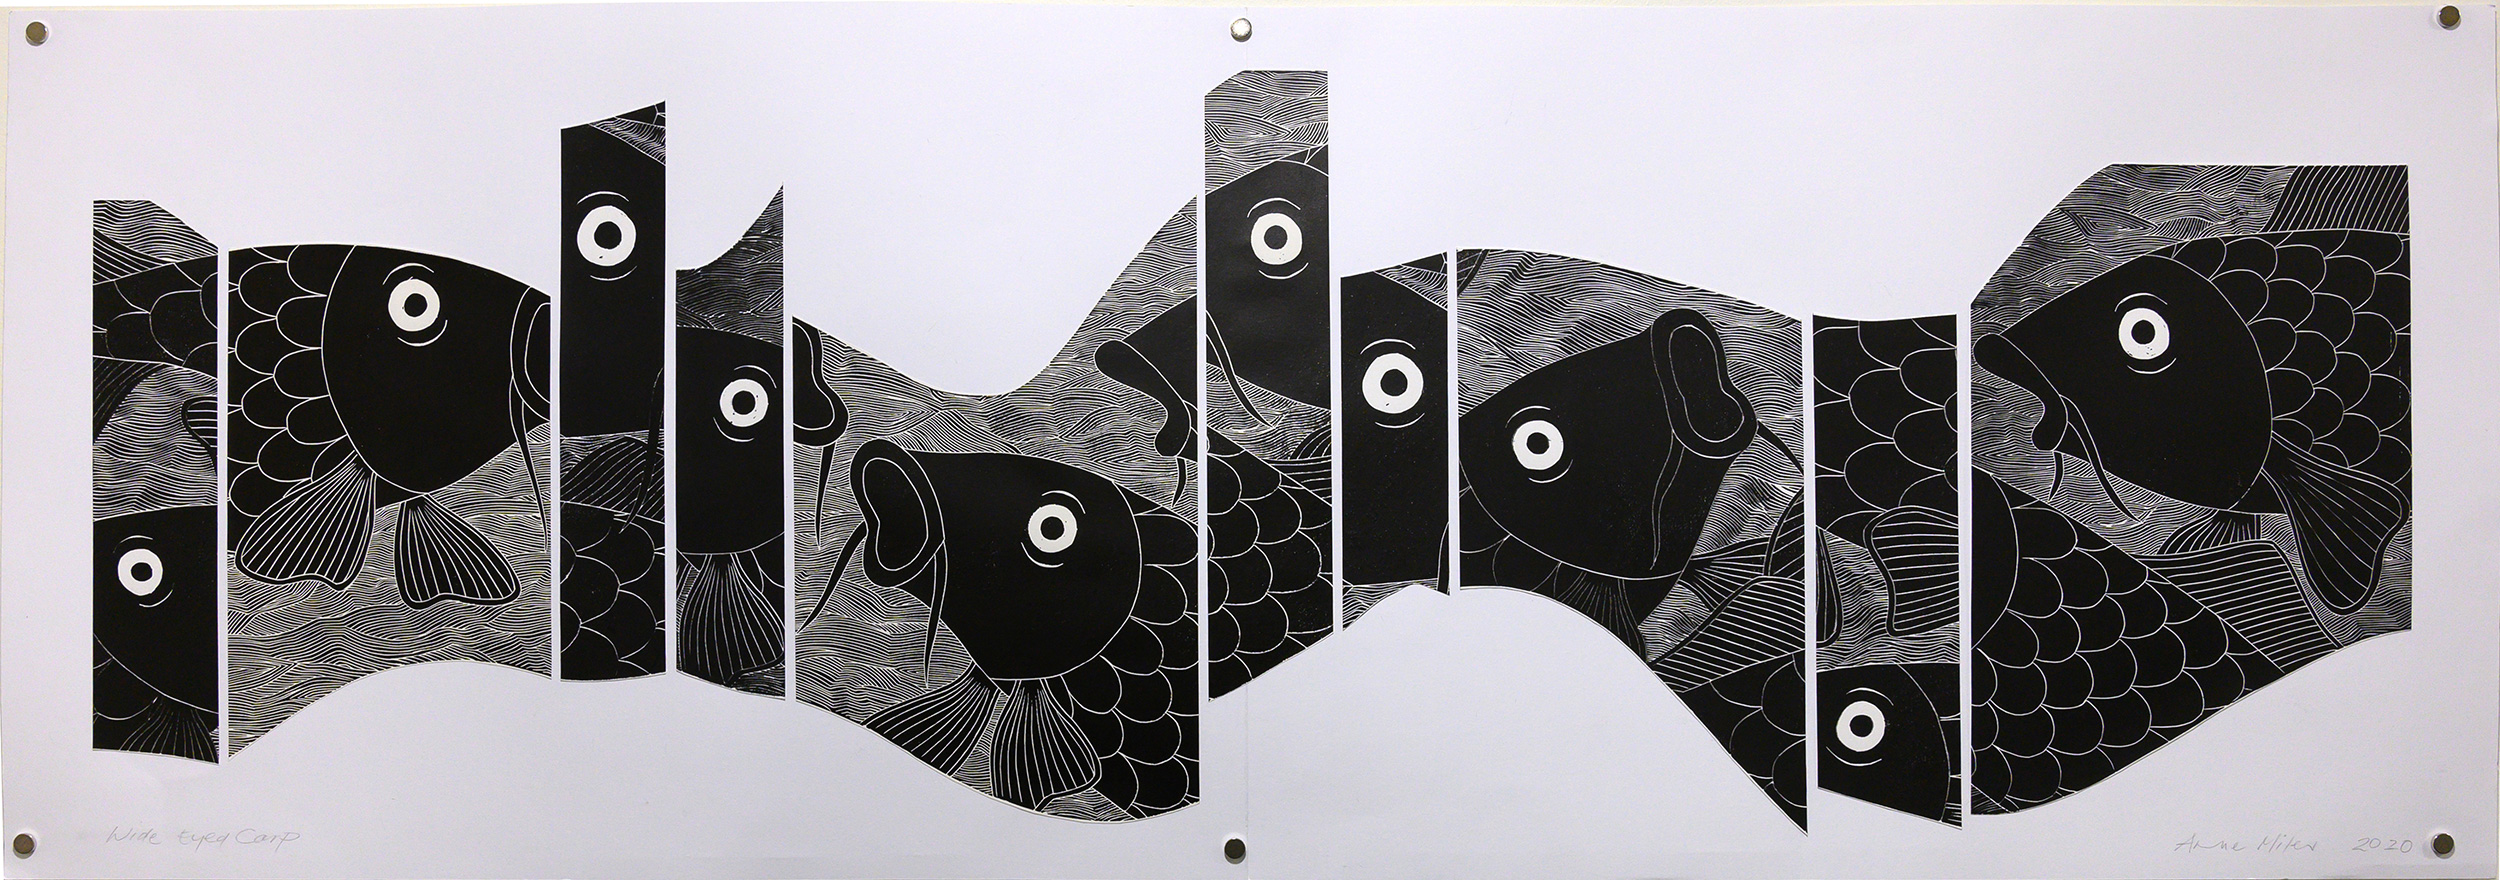 Unframed artwork by Anne Miles of multiple large black & white Carp within a segmented river shape